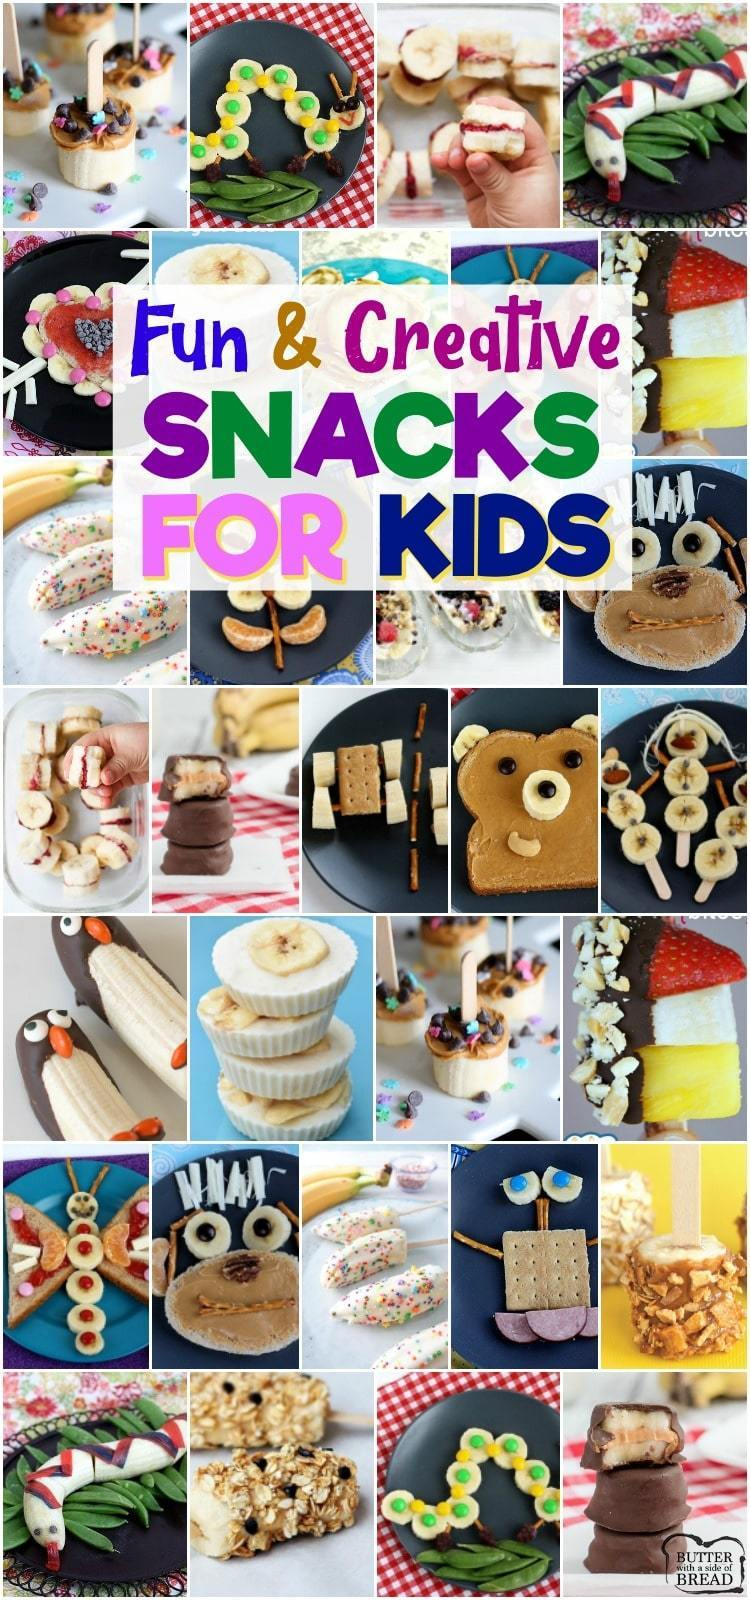 Cute & creative snacks for kids with bananas! Fun, healthy banana recipe snack ideas perfect for toddlers & kid's lunches. #snacks #ideas #food #lunch #snacksforkids #toddlers #bananas from BUTTER WITH A SIDE OF BREAD